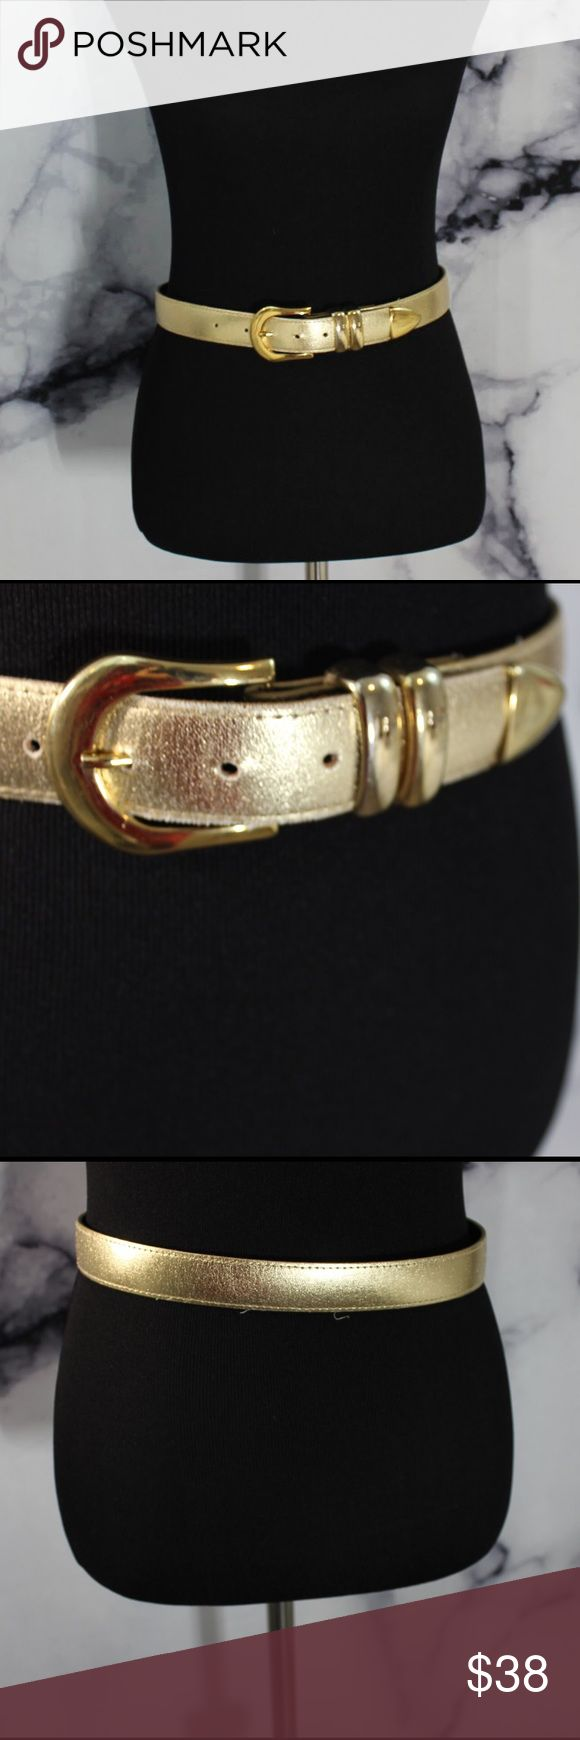 Vintage Gold Belt Gorgeous belt. Women's M shown on A M size dress form. Excellent condition. Comment for measurements! Please ask us any questions you may have! We are fast to respond! 👯Ships same day M-Sat! Vintage Accessories Belts